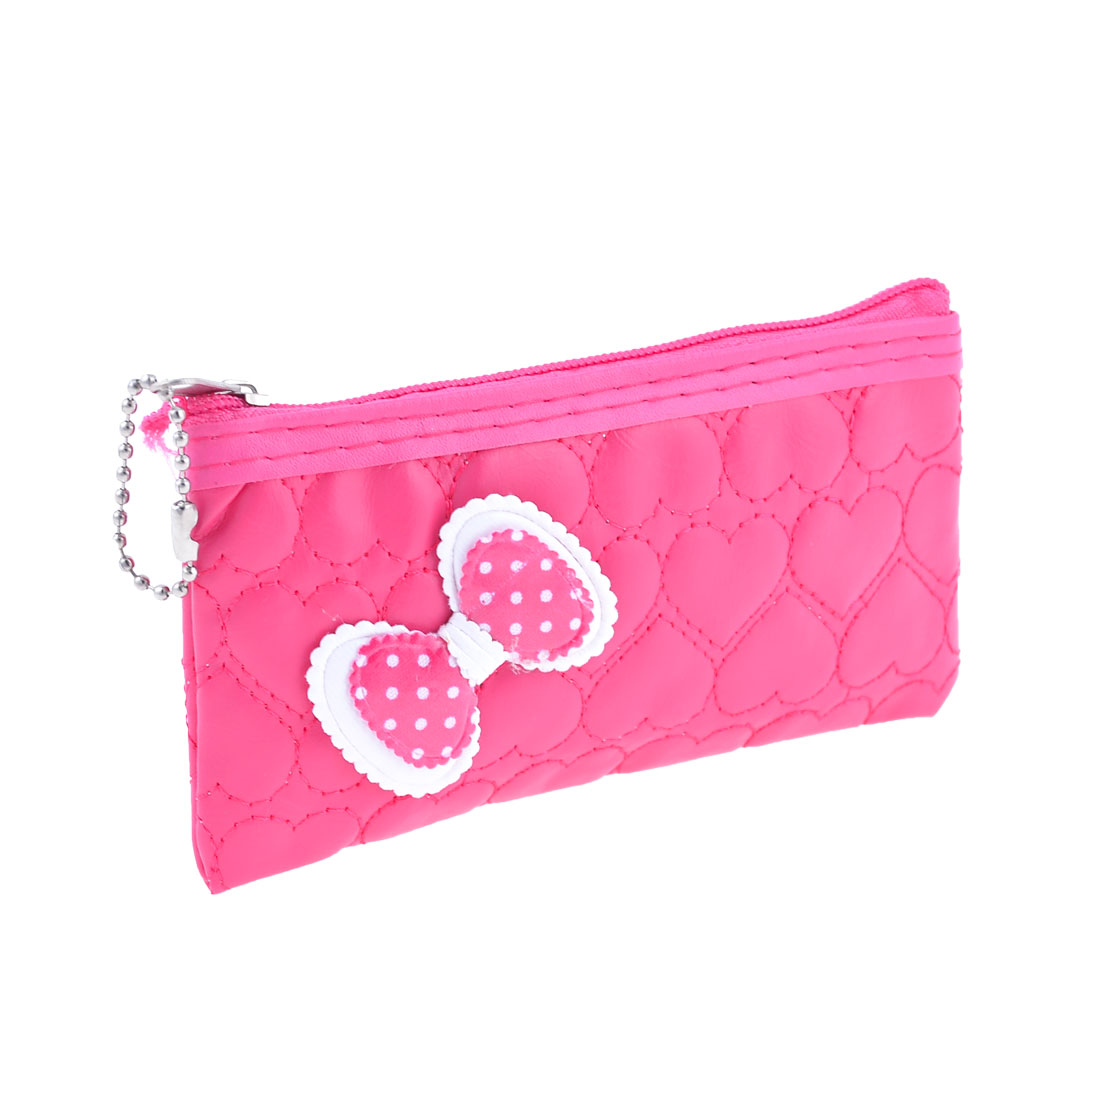 Hot Pink Bowknot Decor Zipper Closure Change Coins Purse Pouch for Women